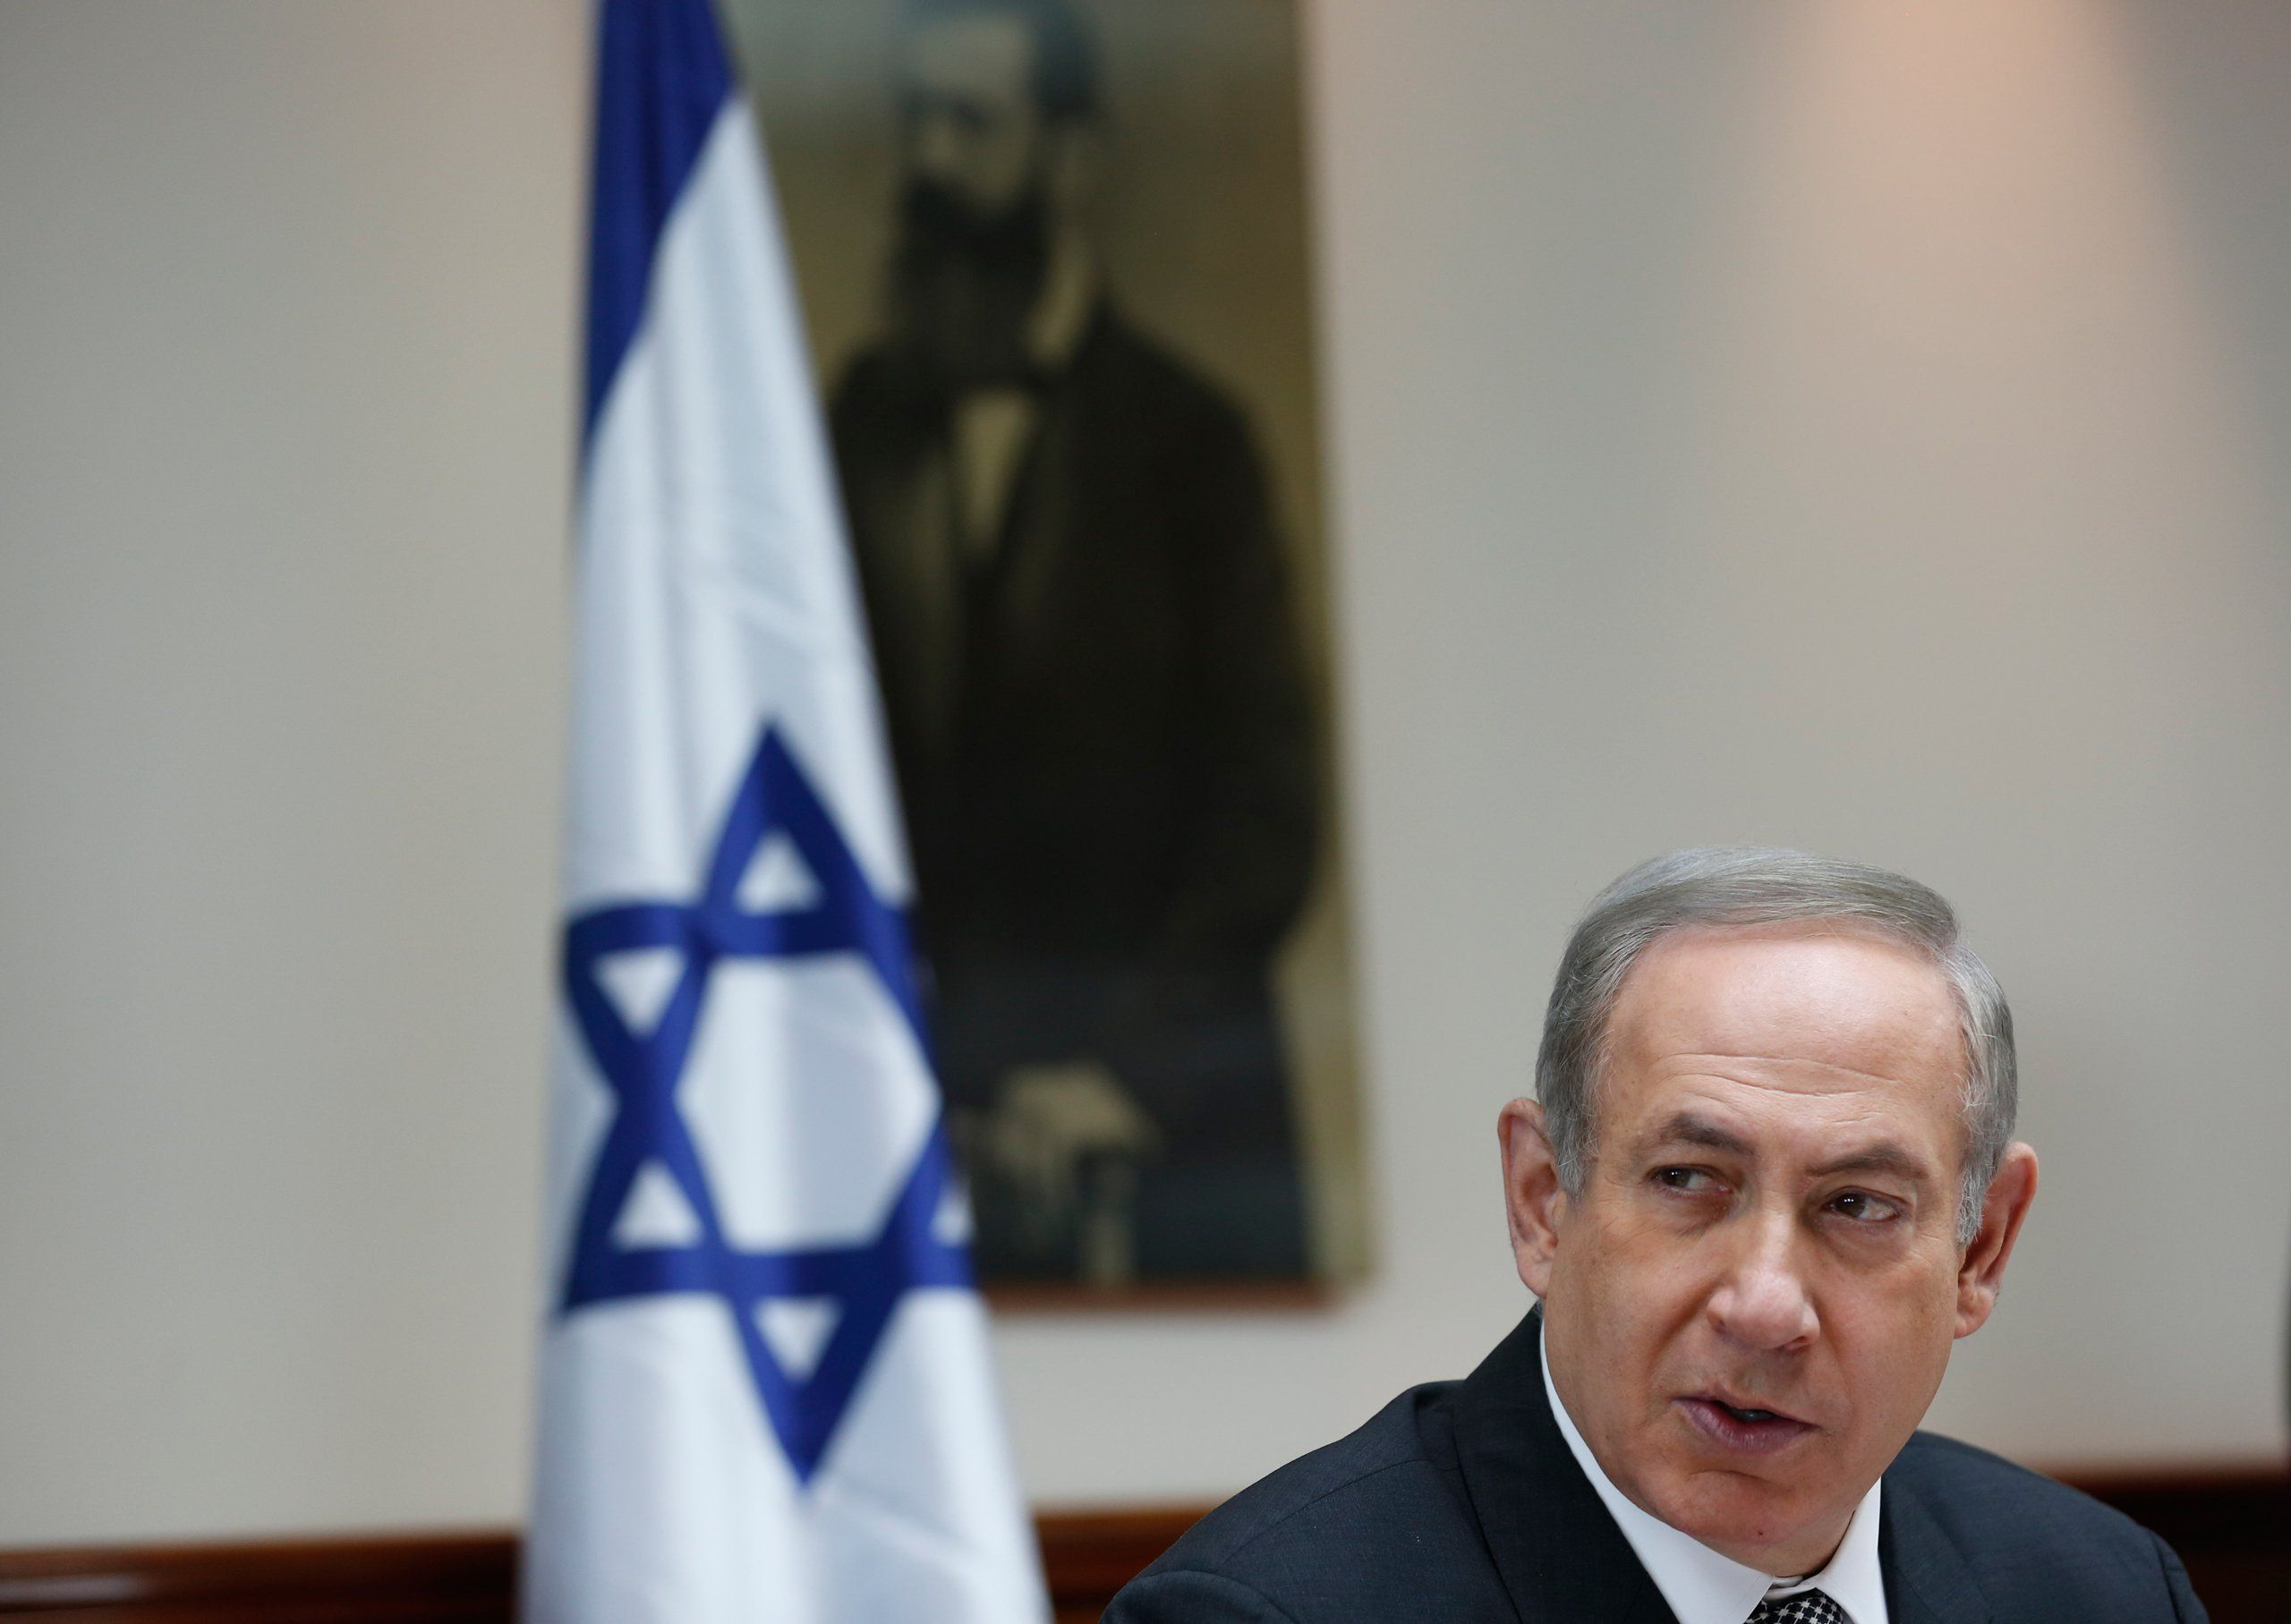 Netanyahu has ruled out resigning following a